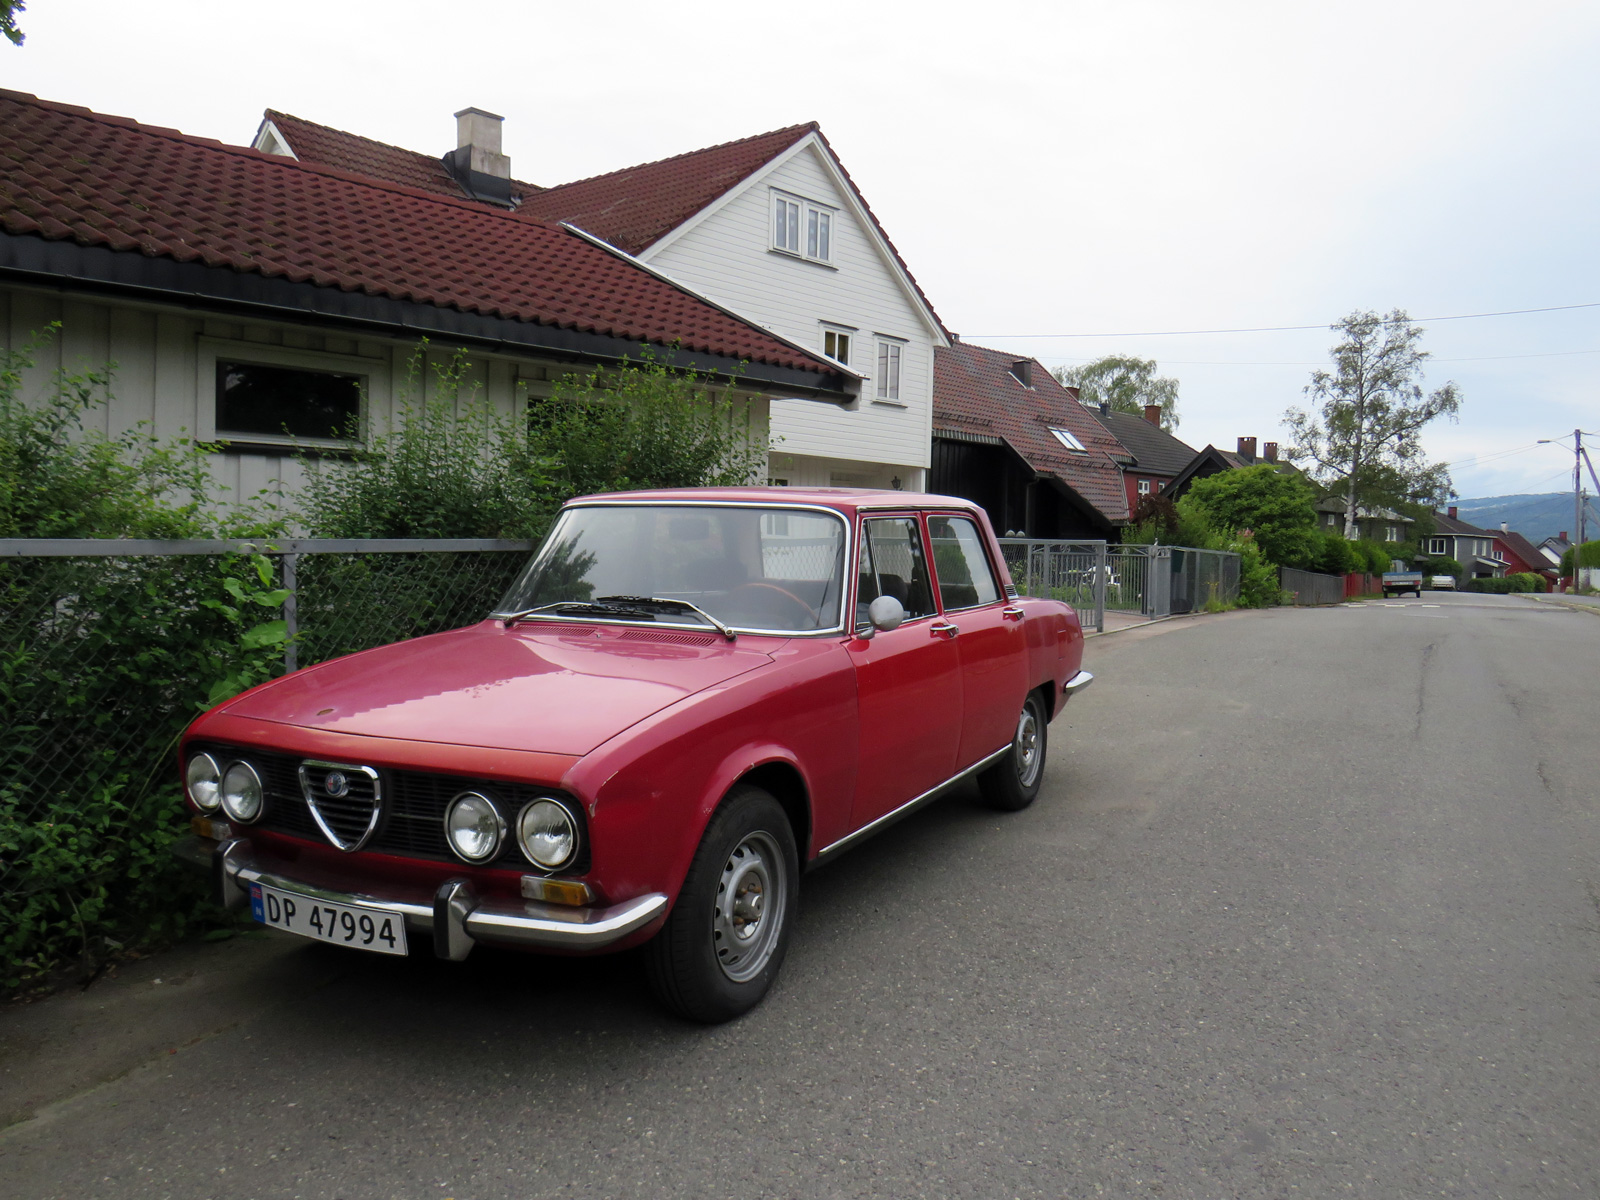 1973 Alfa Romeo 2000 Berlina 105 series italian sports sedan